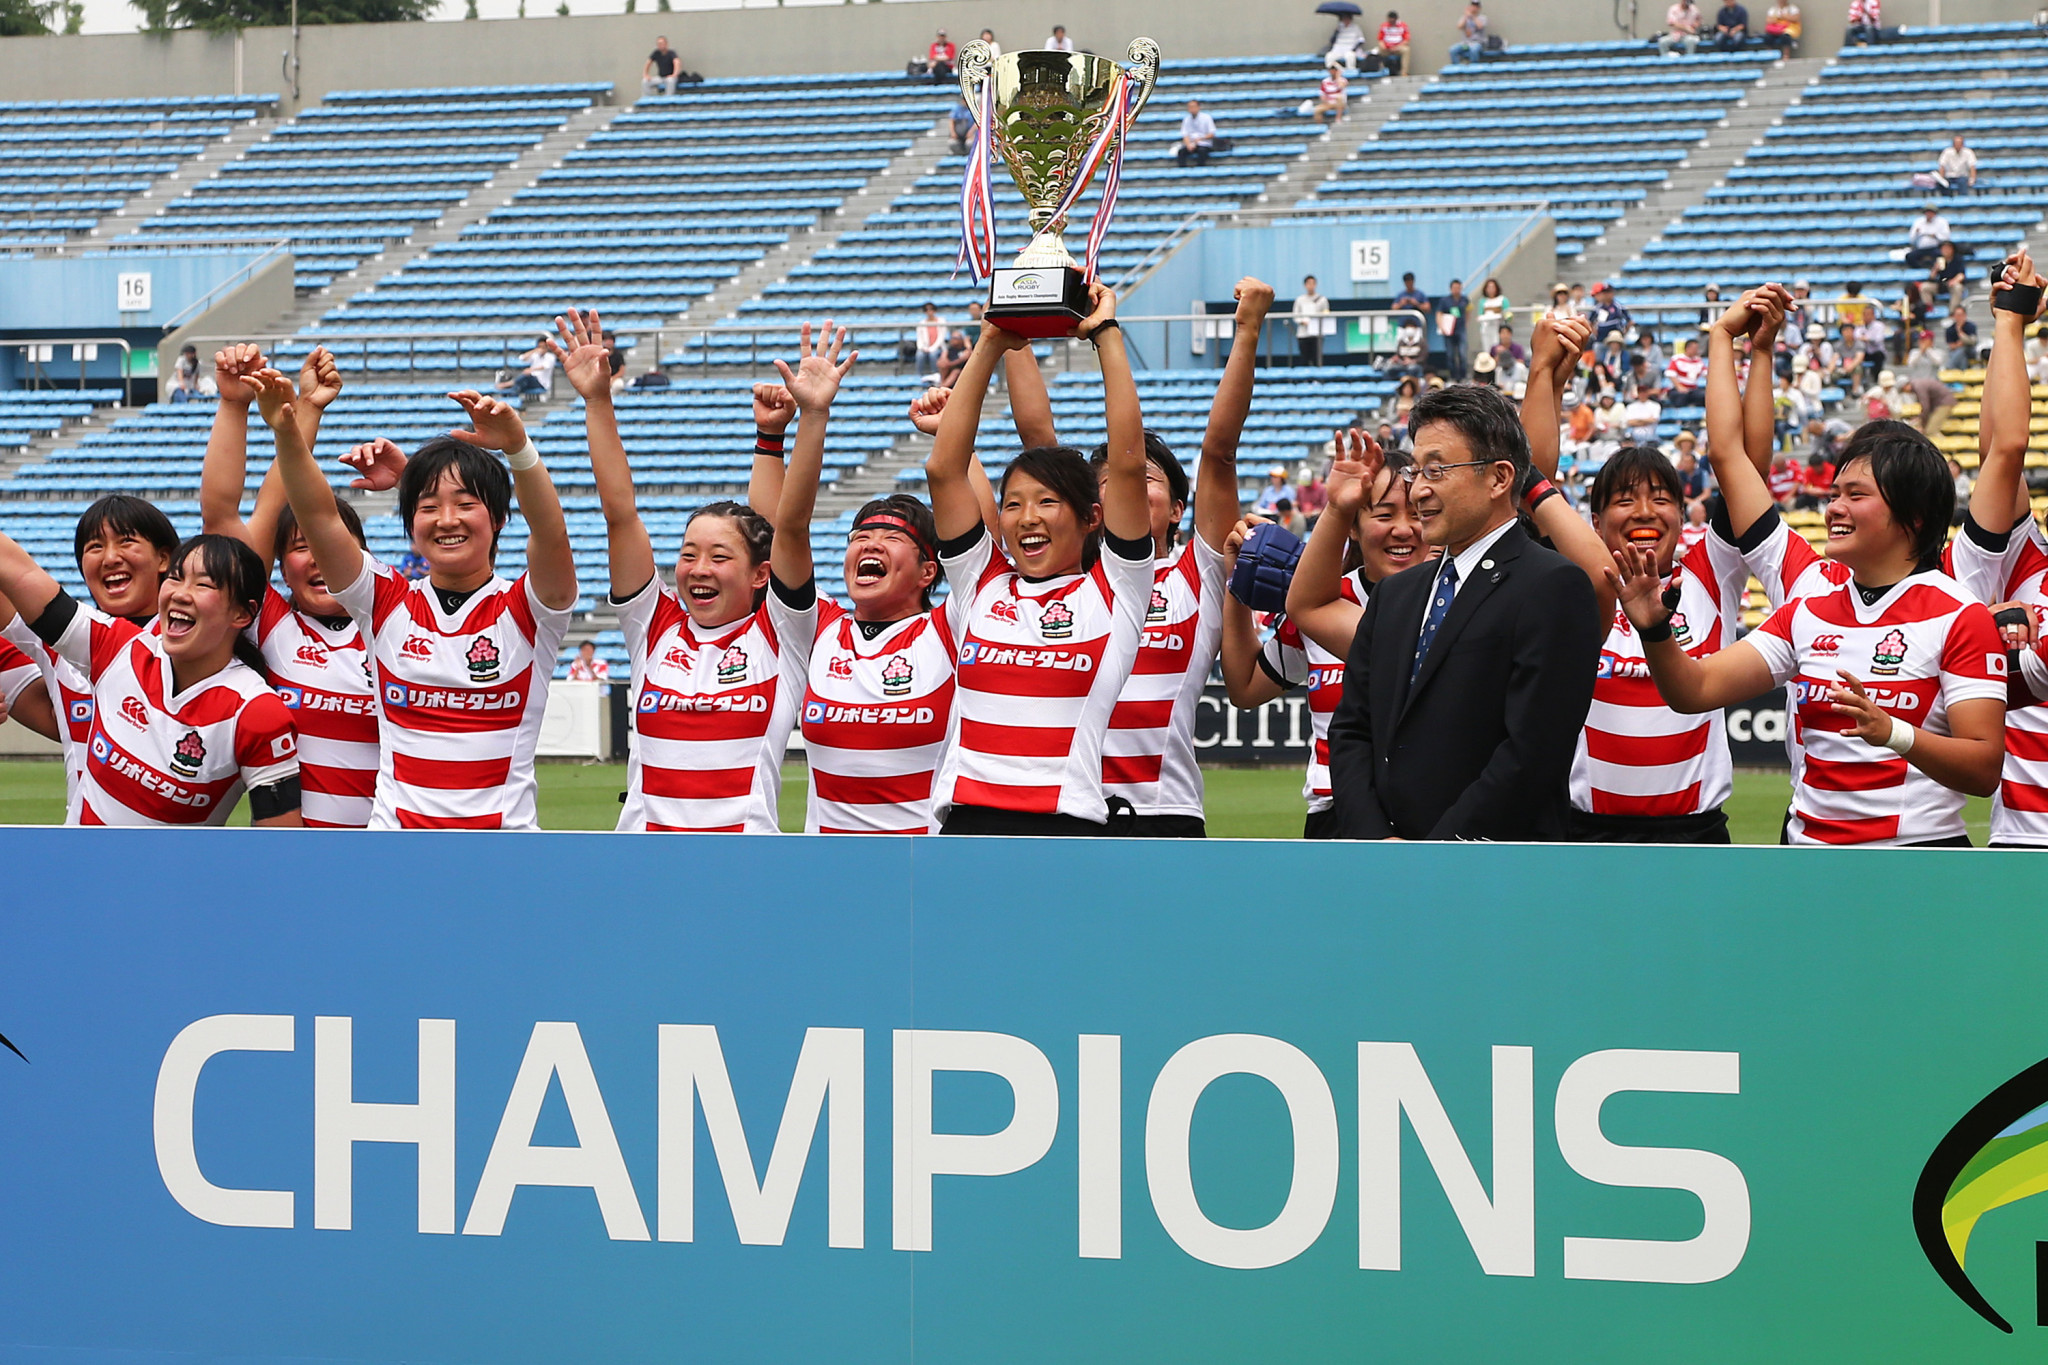 After winning in 2015, 2016 and 2017, Japan's team will look to take their fourth straight title later this spring ©Getty Images